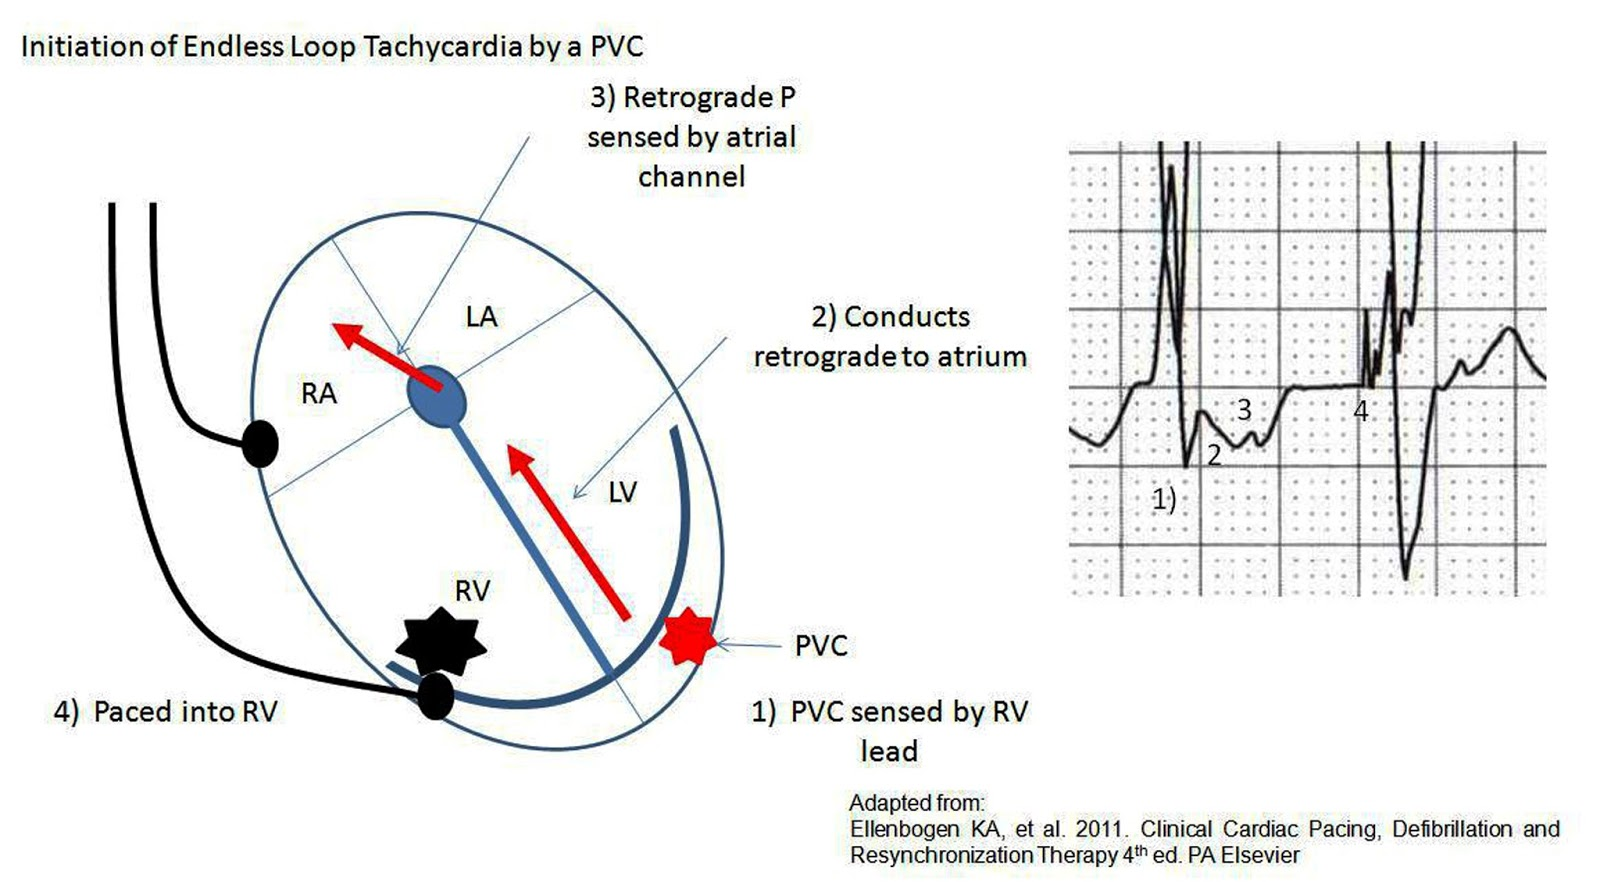 ecg rhythms  wide qrs tachycardia  wqrst  in a patient with a pacemaker